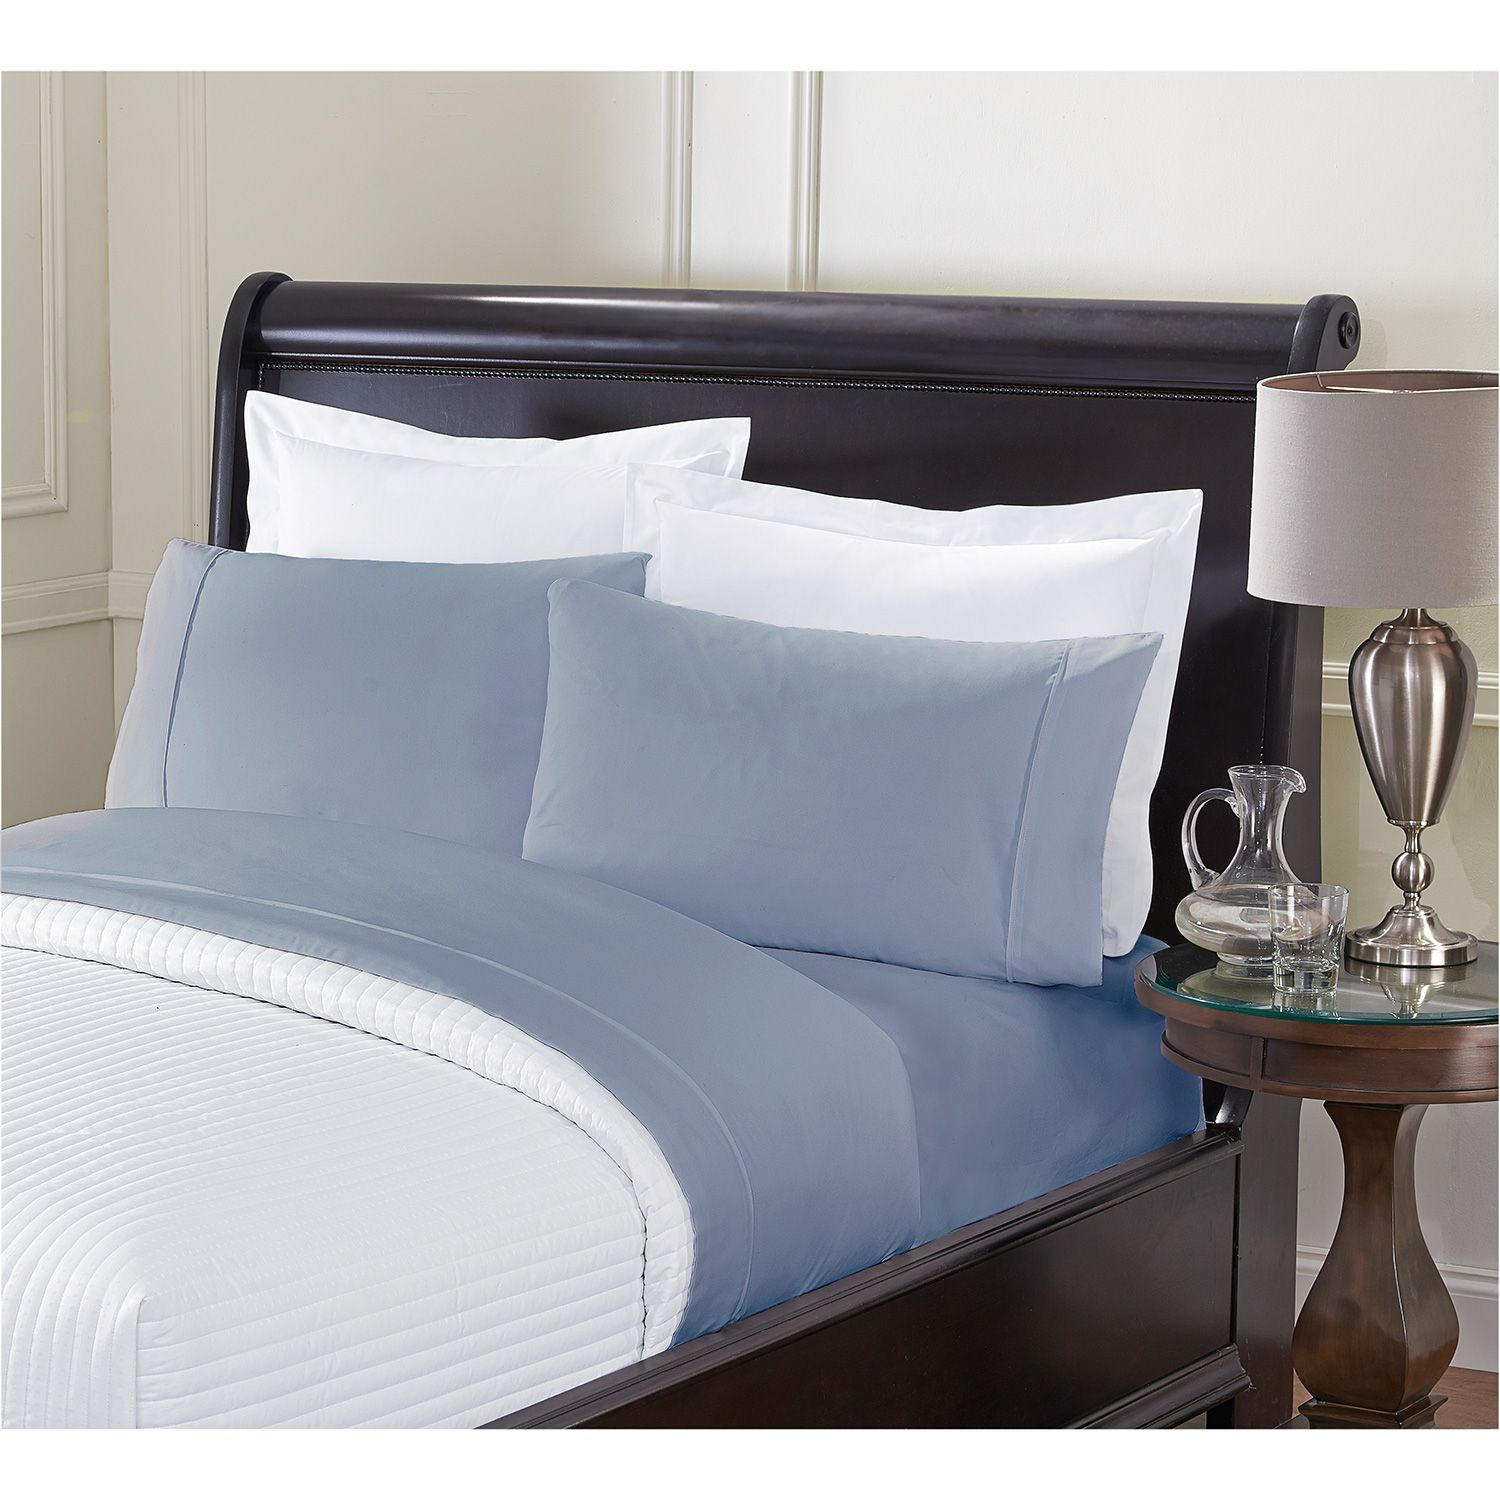 Soft Touched King Size Sheets - Blue